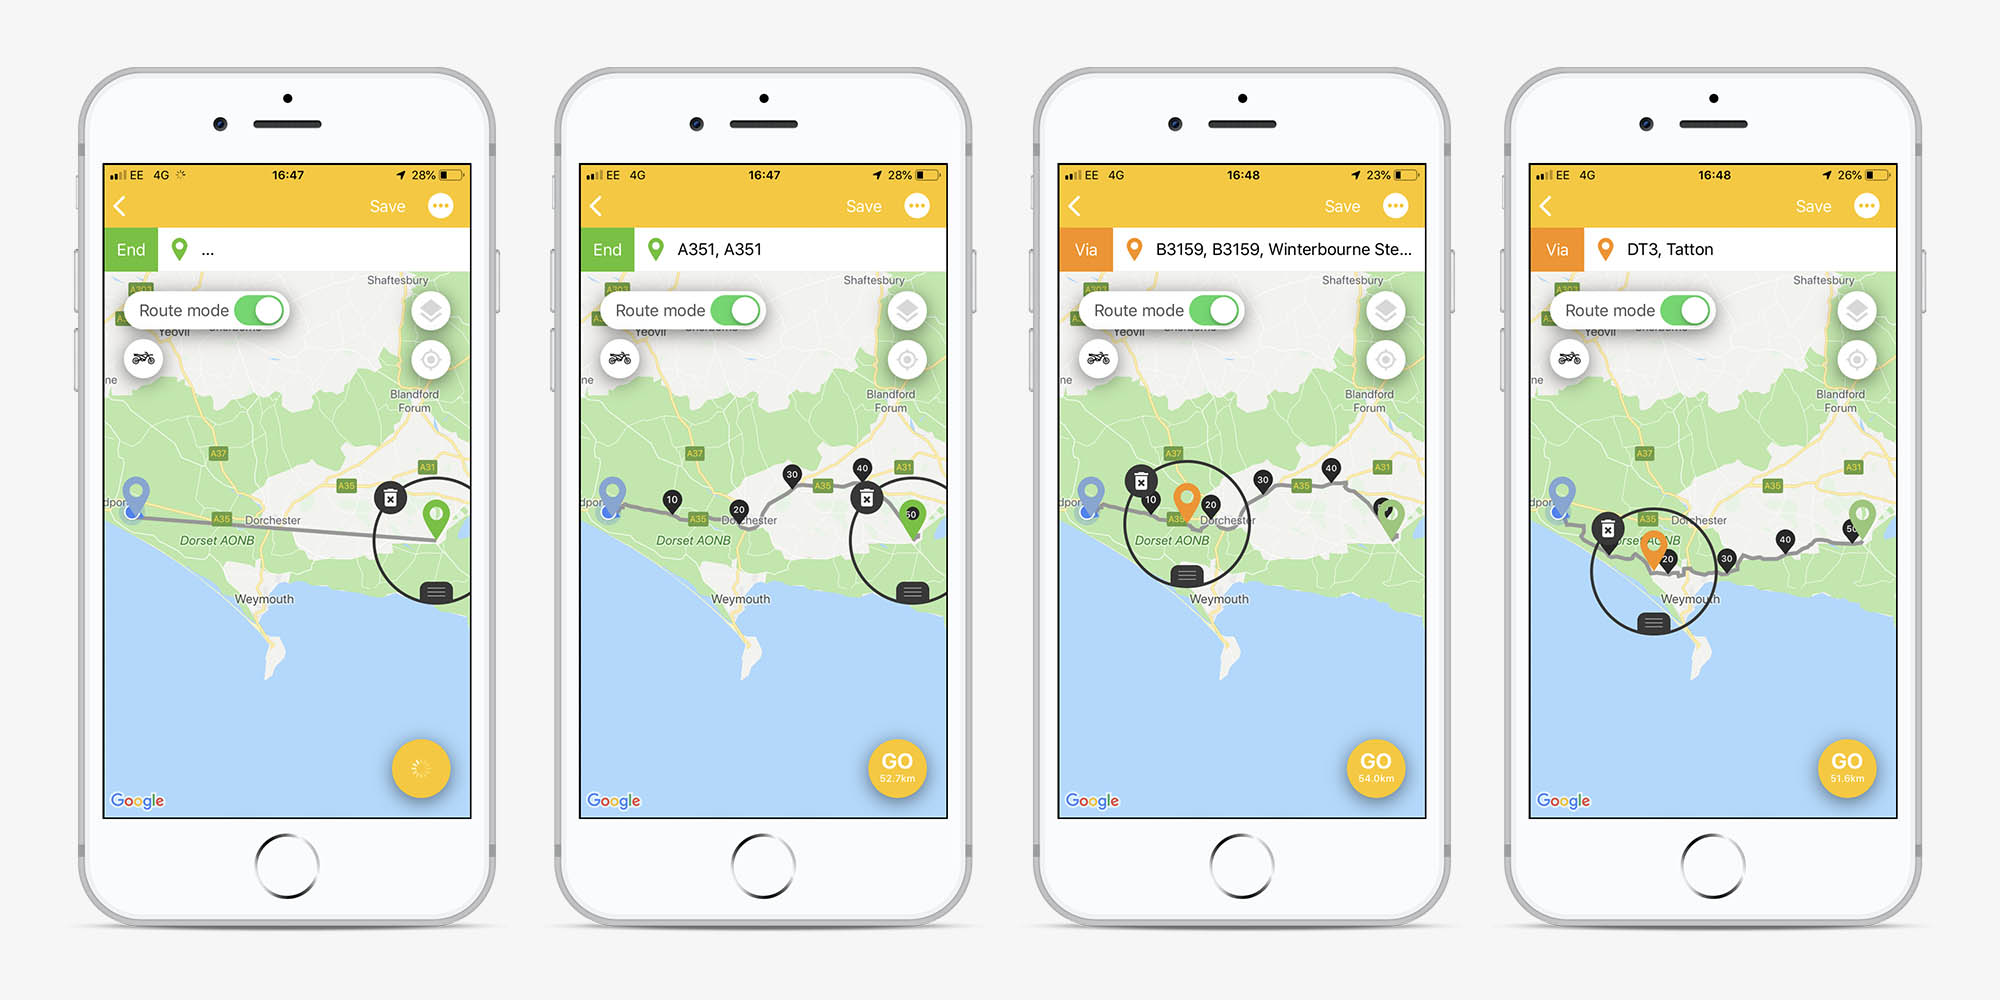 Screens from the Beeline app showing a route being planned with waypoints for use in Route Mode